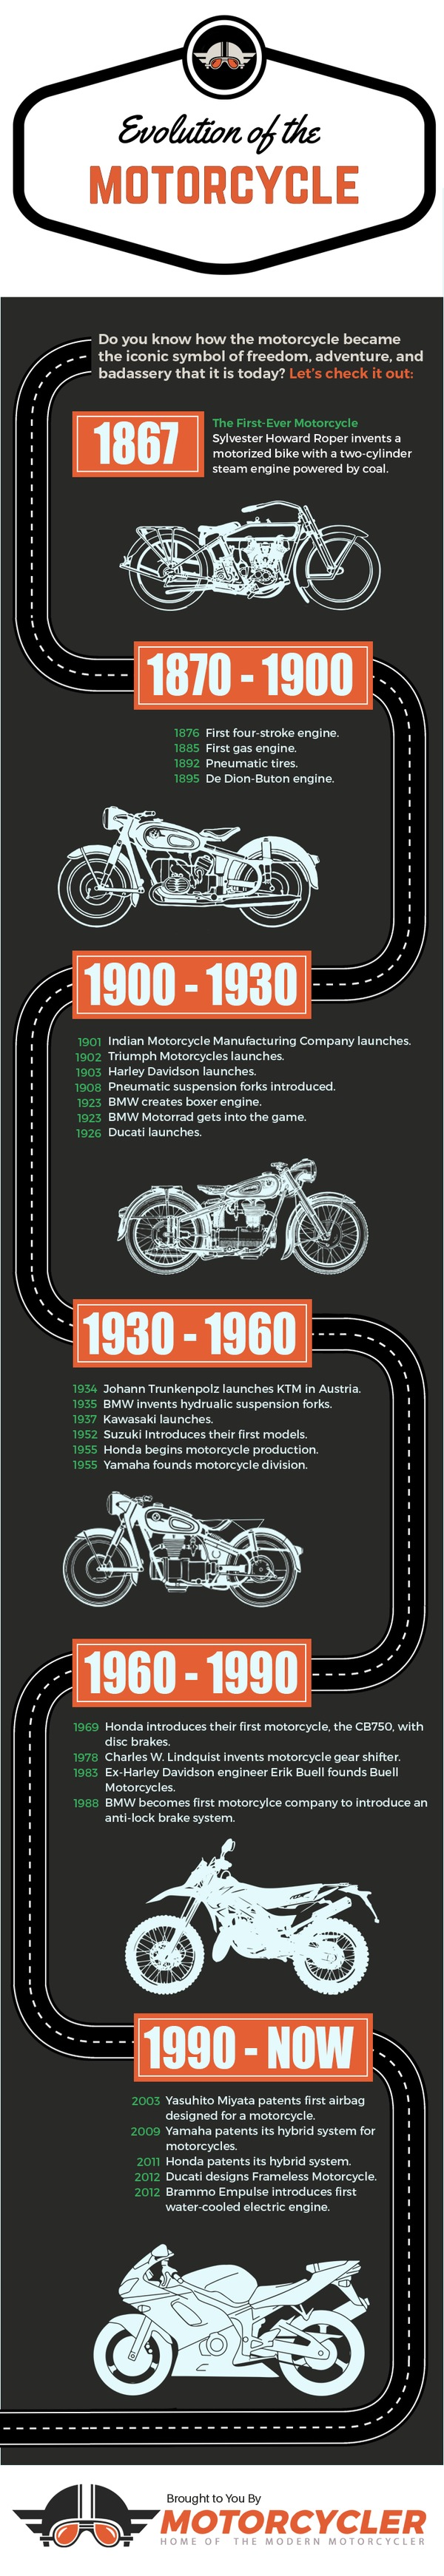 The Evolution of the Motorbike